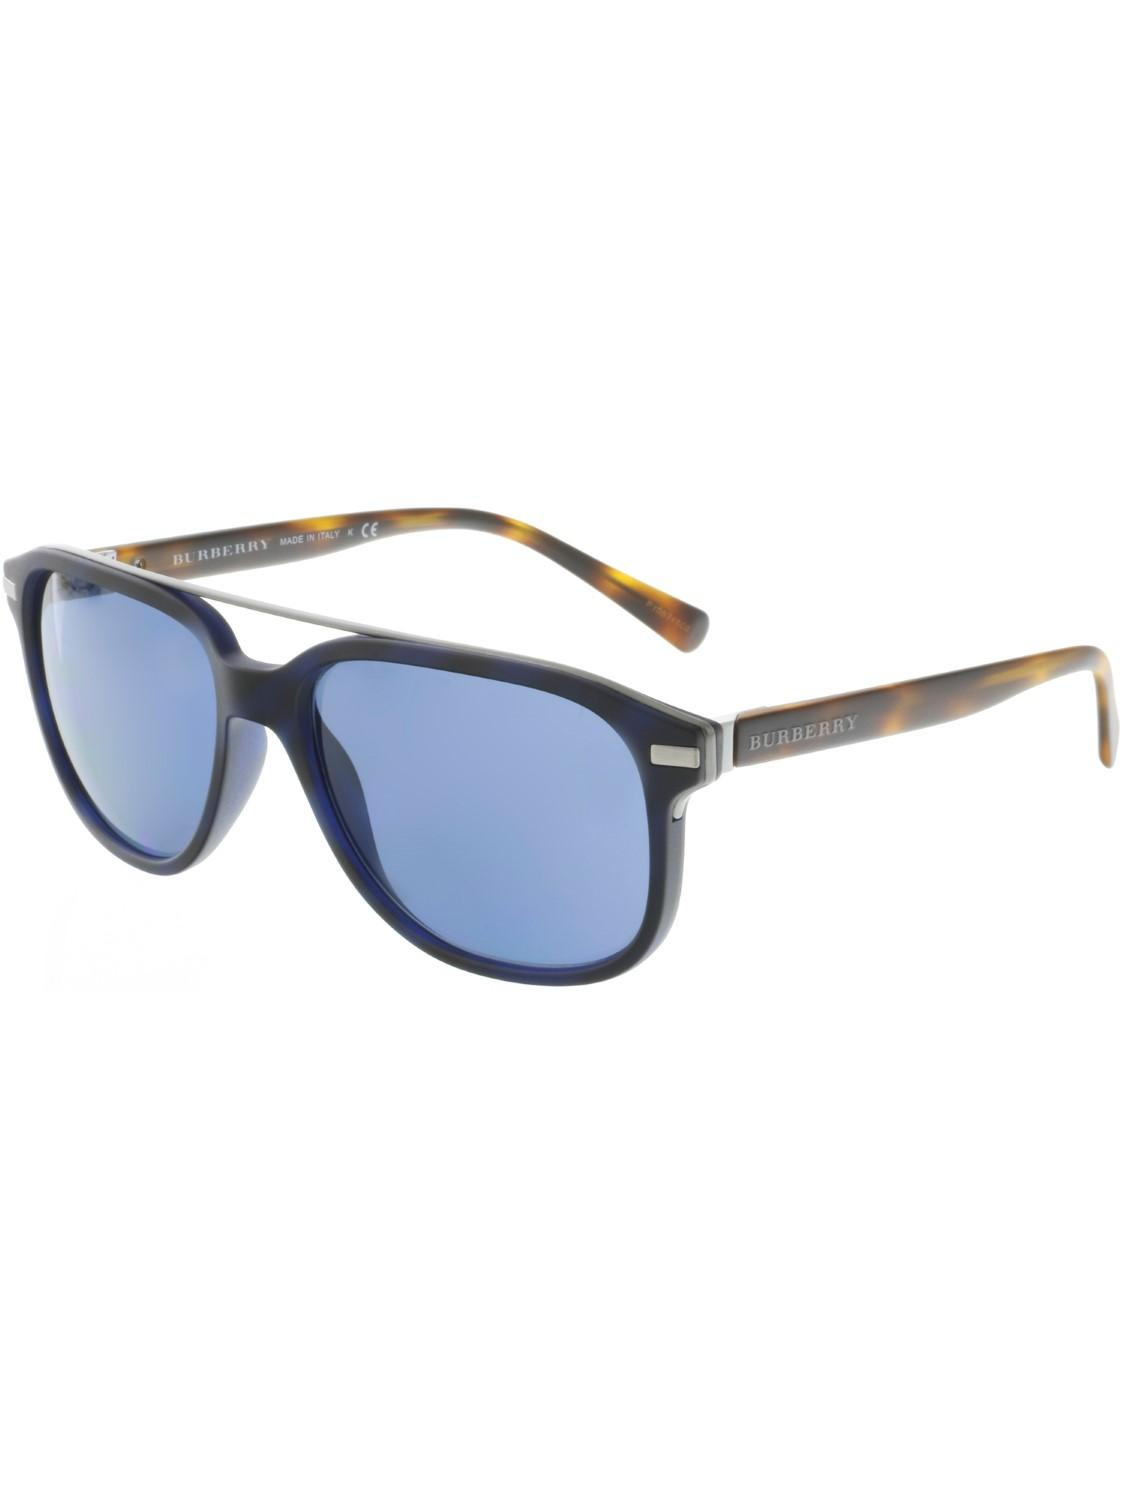 d88bb8ccdd7c Lyst - Burberry Be4233-362180-57 Blue Square Sunglasses in Black for Men